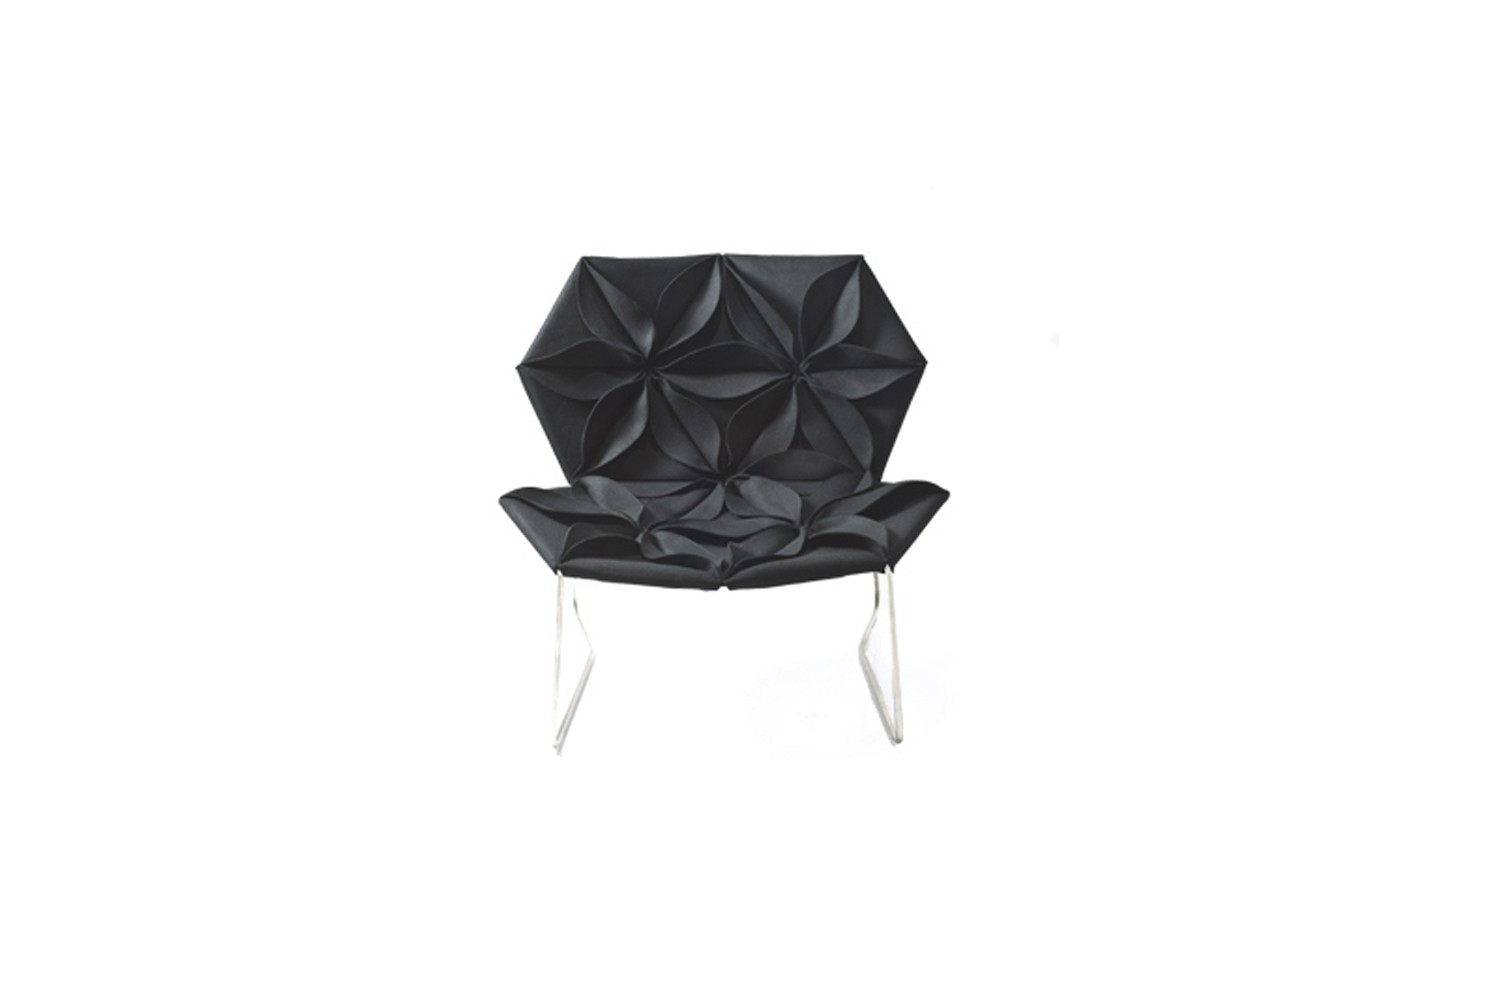 Antibodi Armchair with Flowers B0250 - Leather Class Black Magic - Z, Front Side Petal